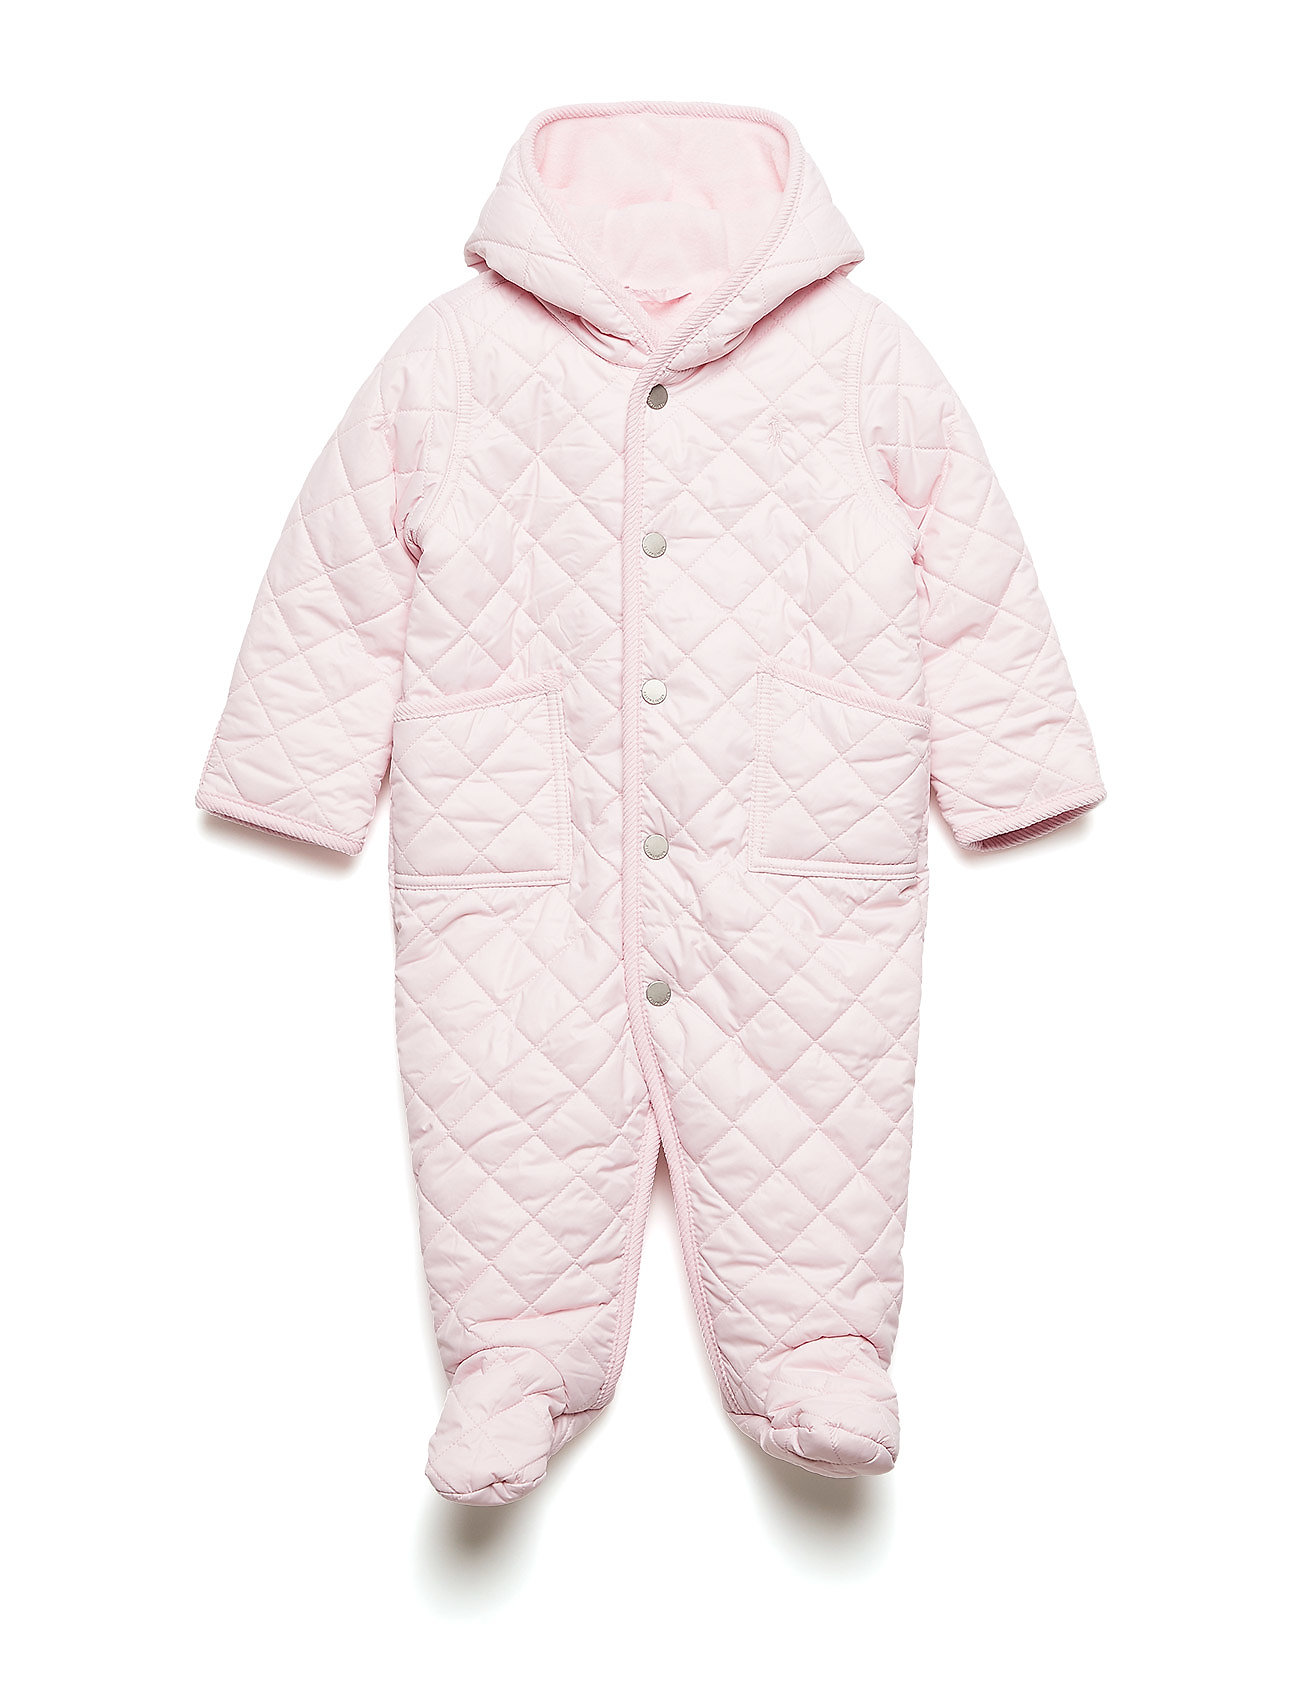 f8fbfcebf Quilted Barn Bunting (Hint Of Pink) (£55.59) - Ralph Lauren Baby ...